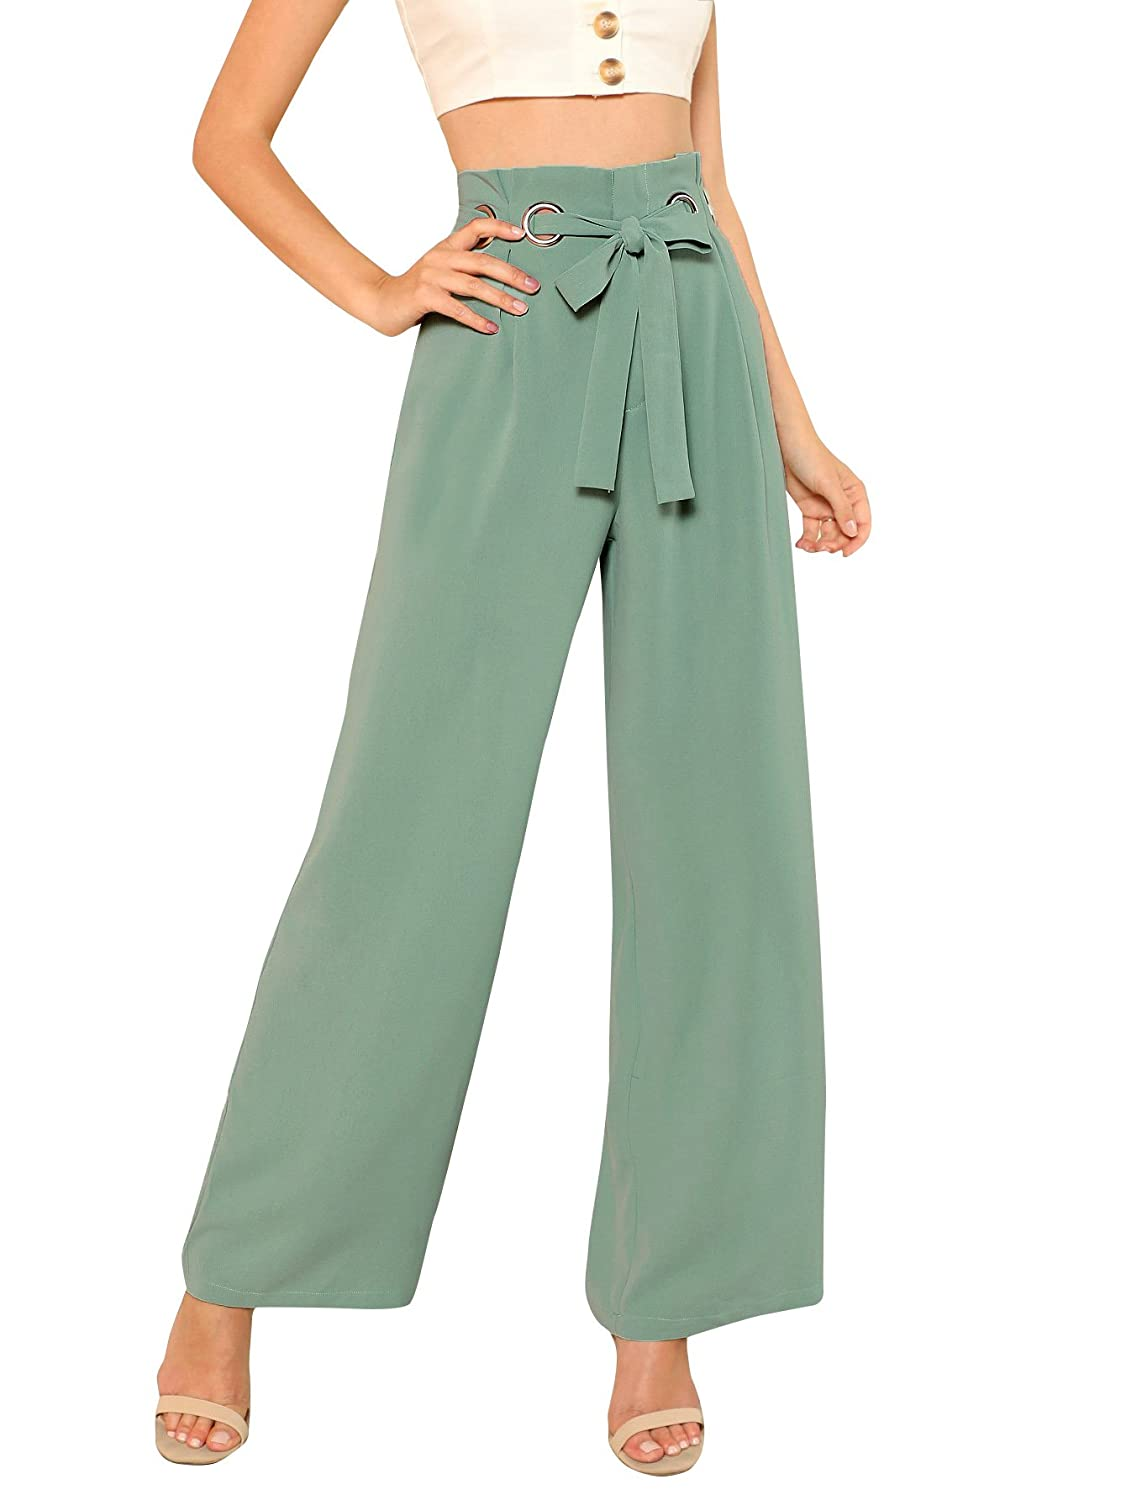 0cf1f428ec Amazon.com: SheIn Women's Casual Tie Waist Plain Wide Leg Palazzo Pants:  Clothing